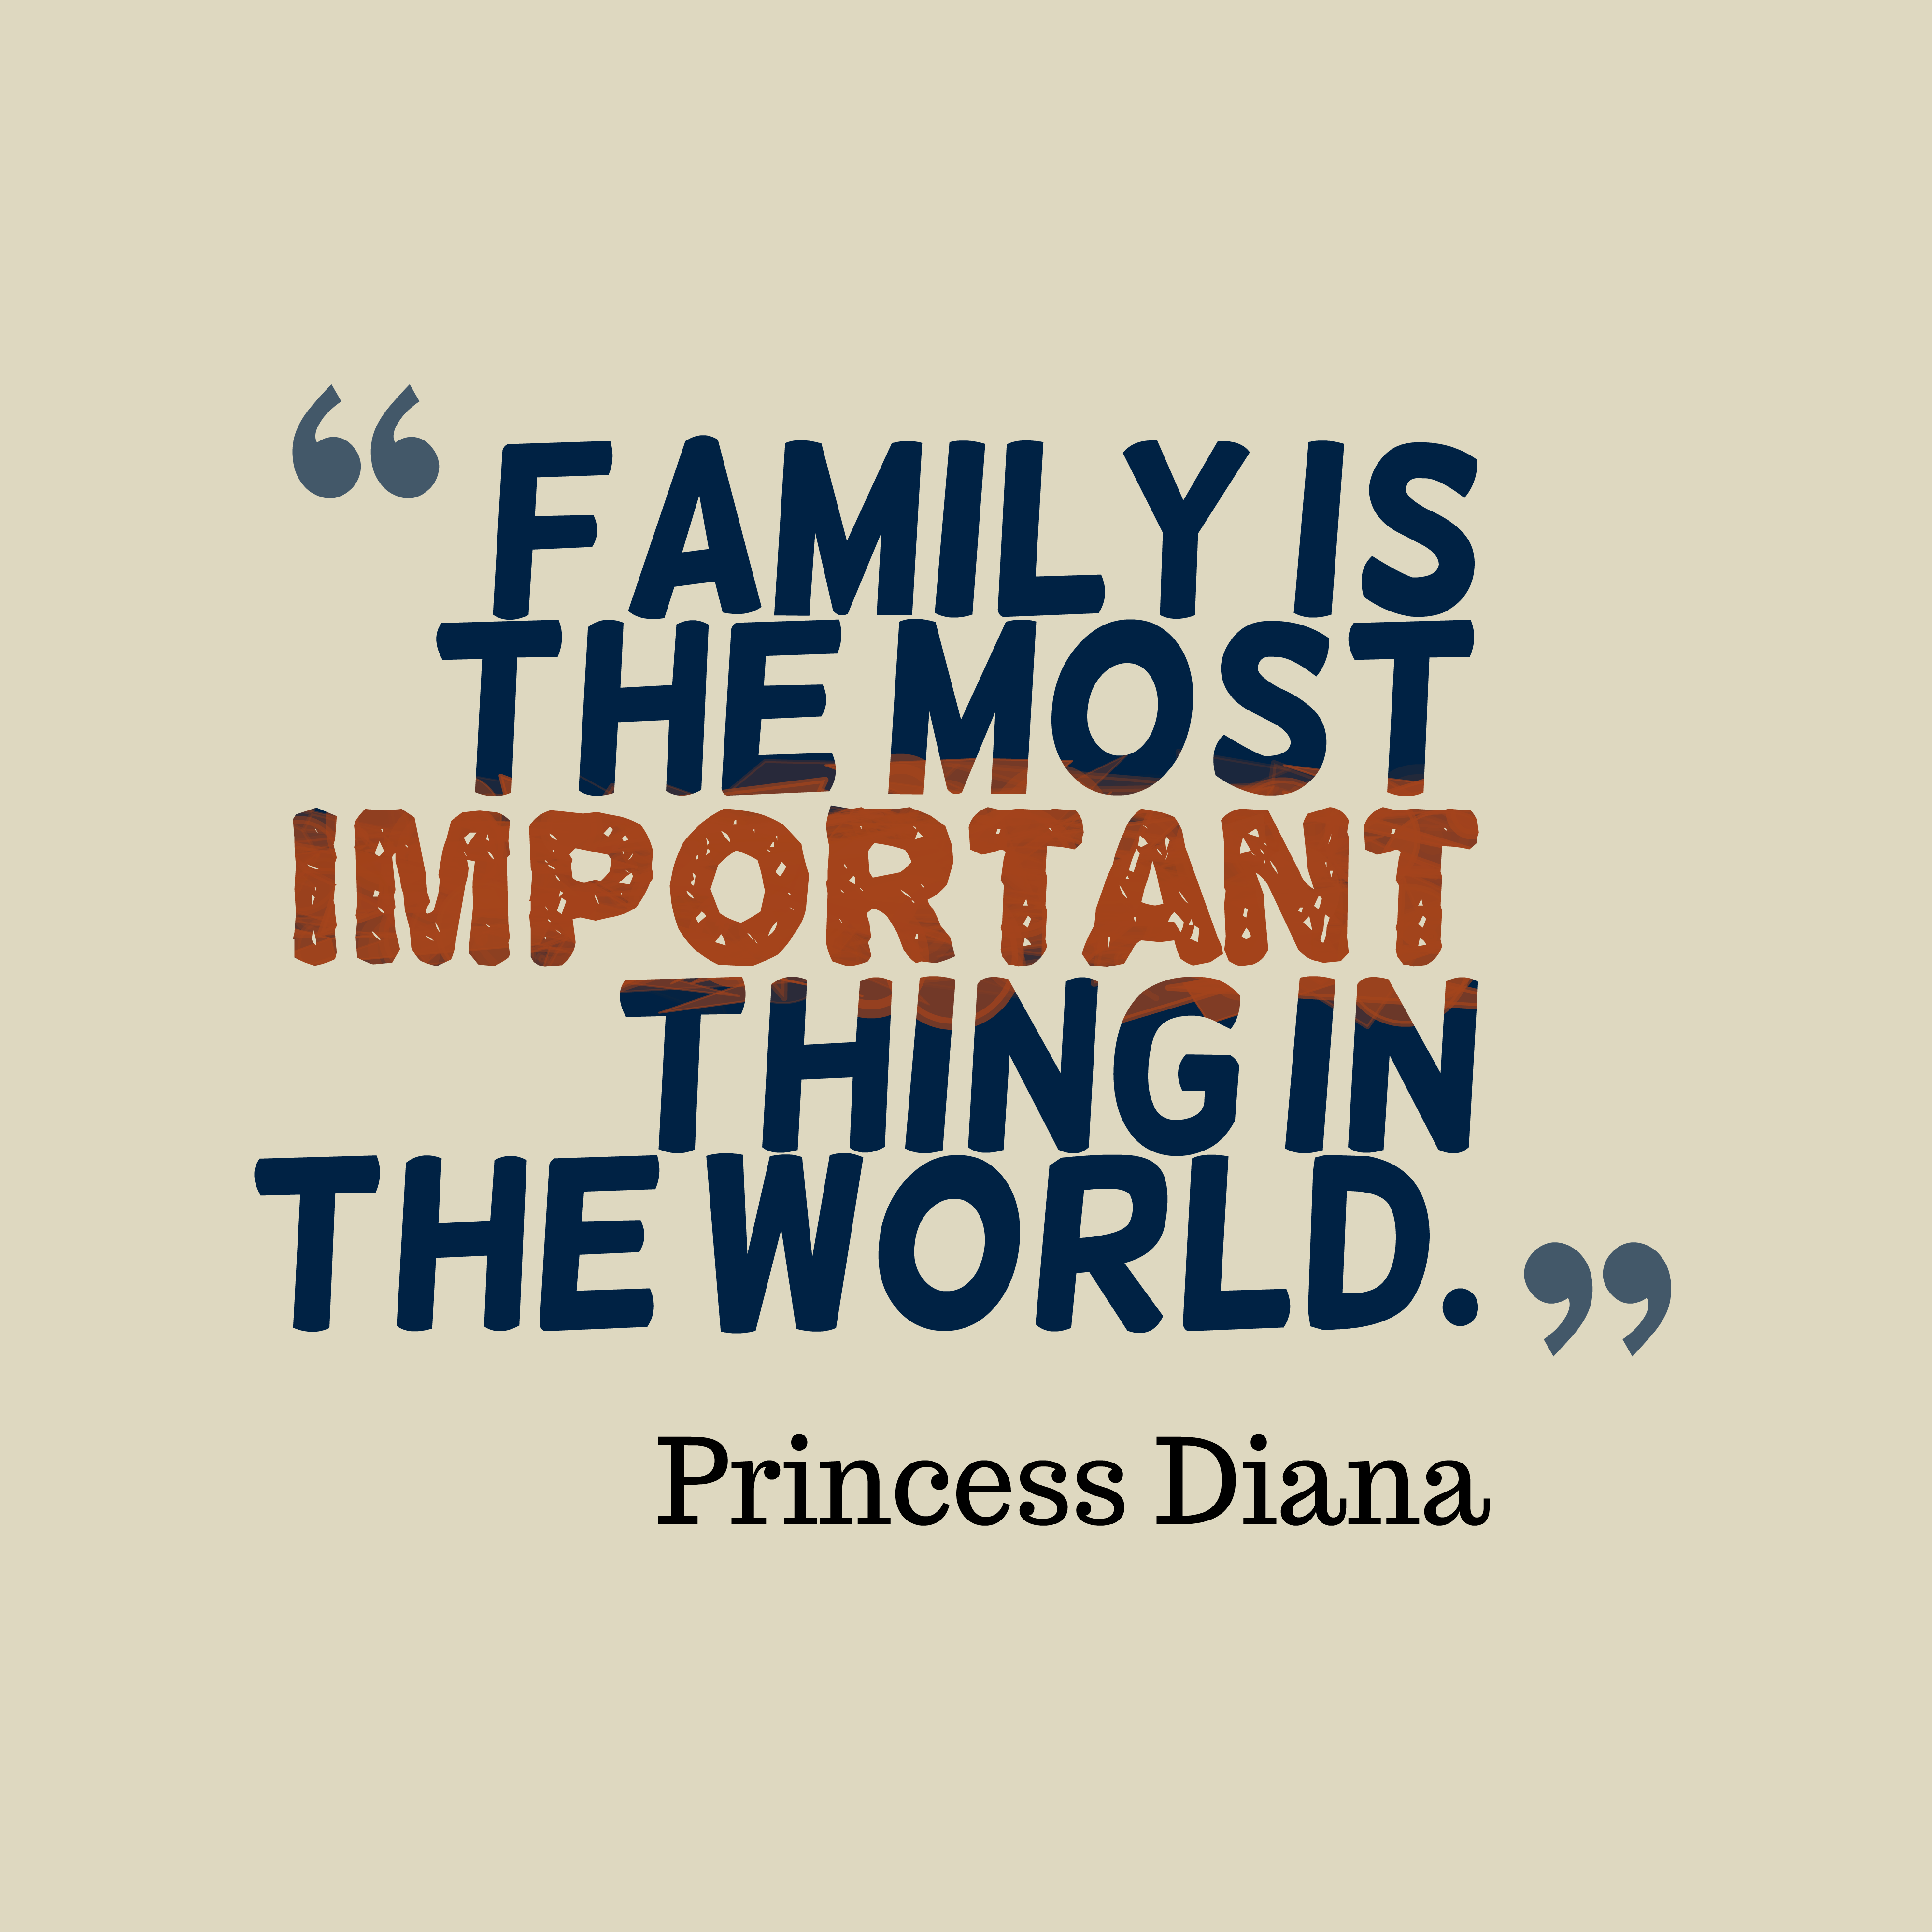 importance of your family Importance of family communication establishing a foundation for the family a foundation supports a family when crises arise, the family is able to withstand them because of the stability of the relational structure families with defined values are able to stand strong on their views despite other people's efforts to break through with.